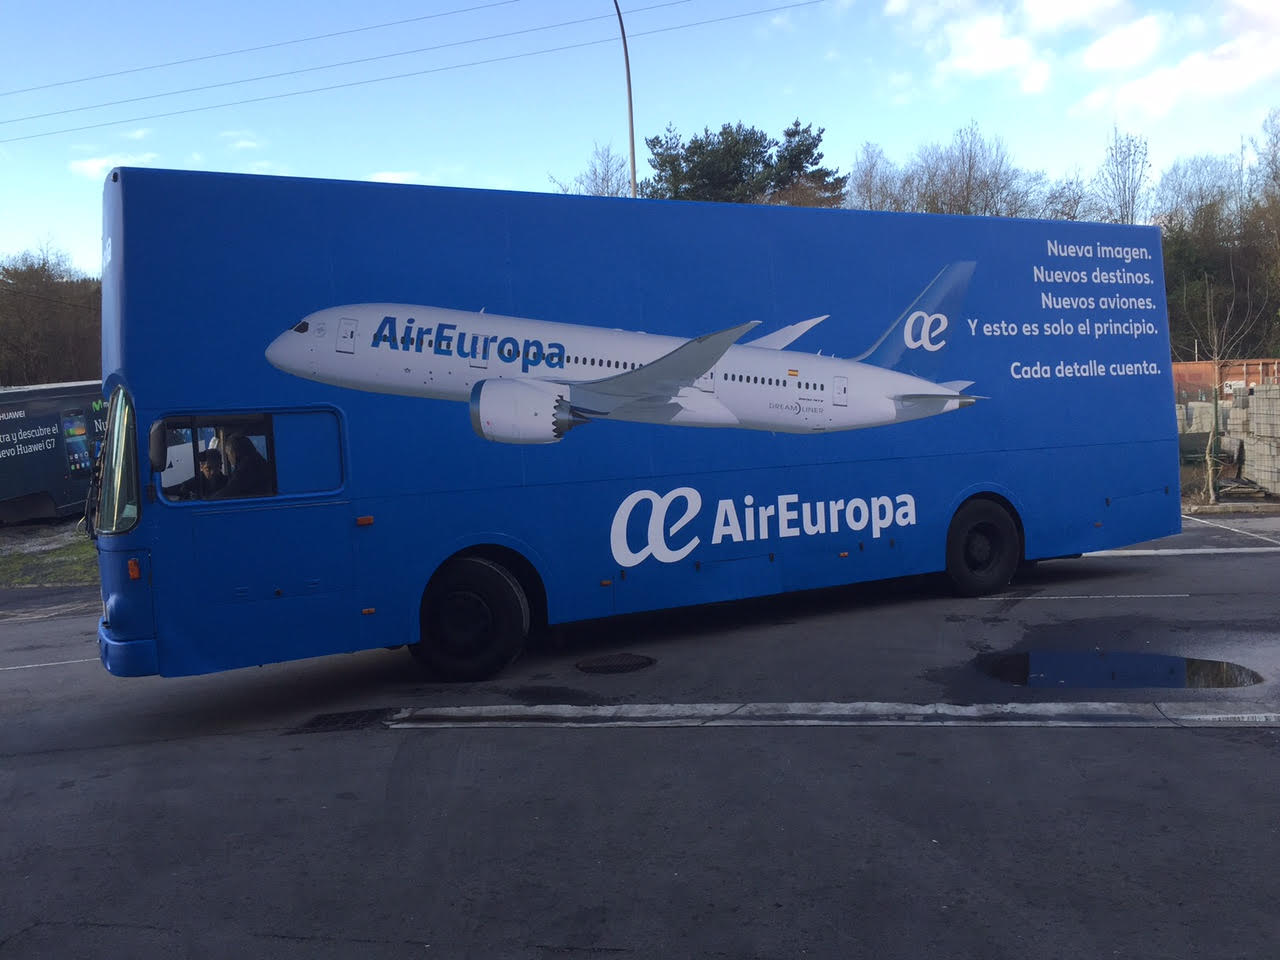 AIR EUROPA - BUS VALLA INGLES